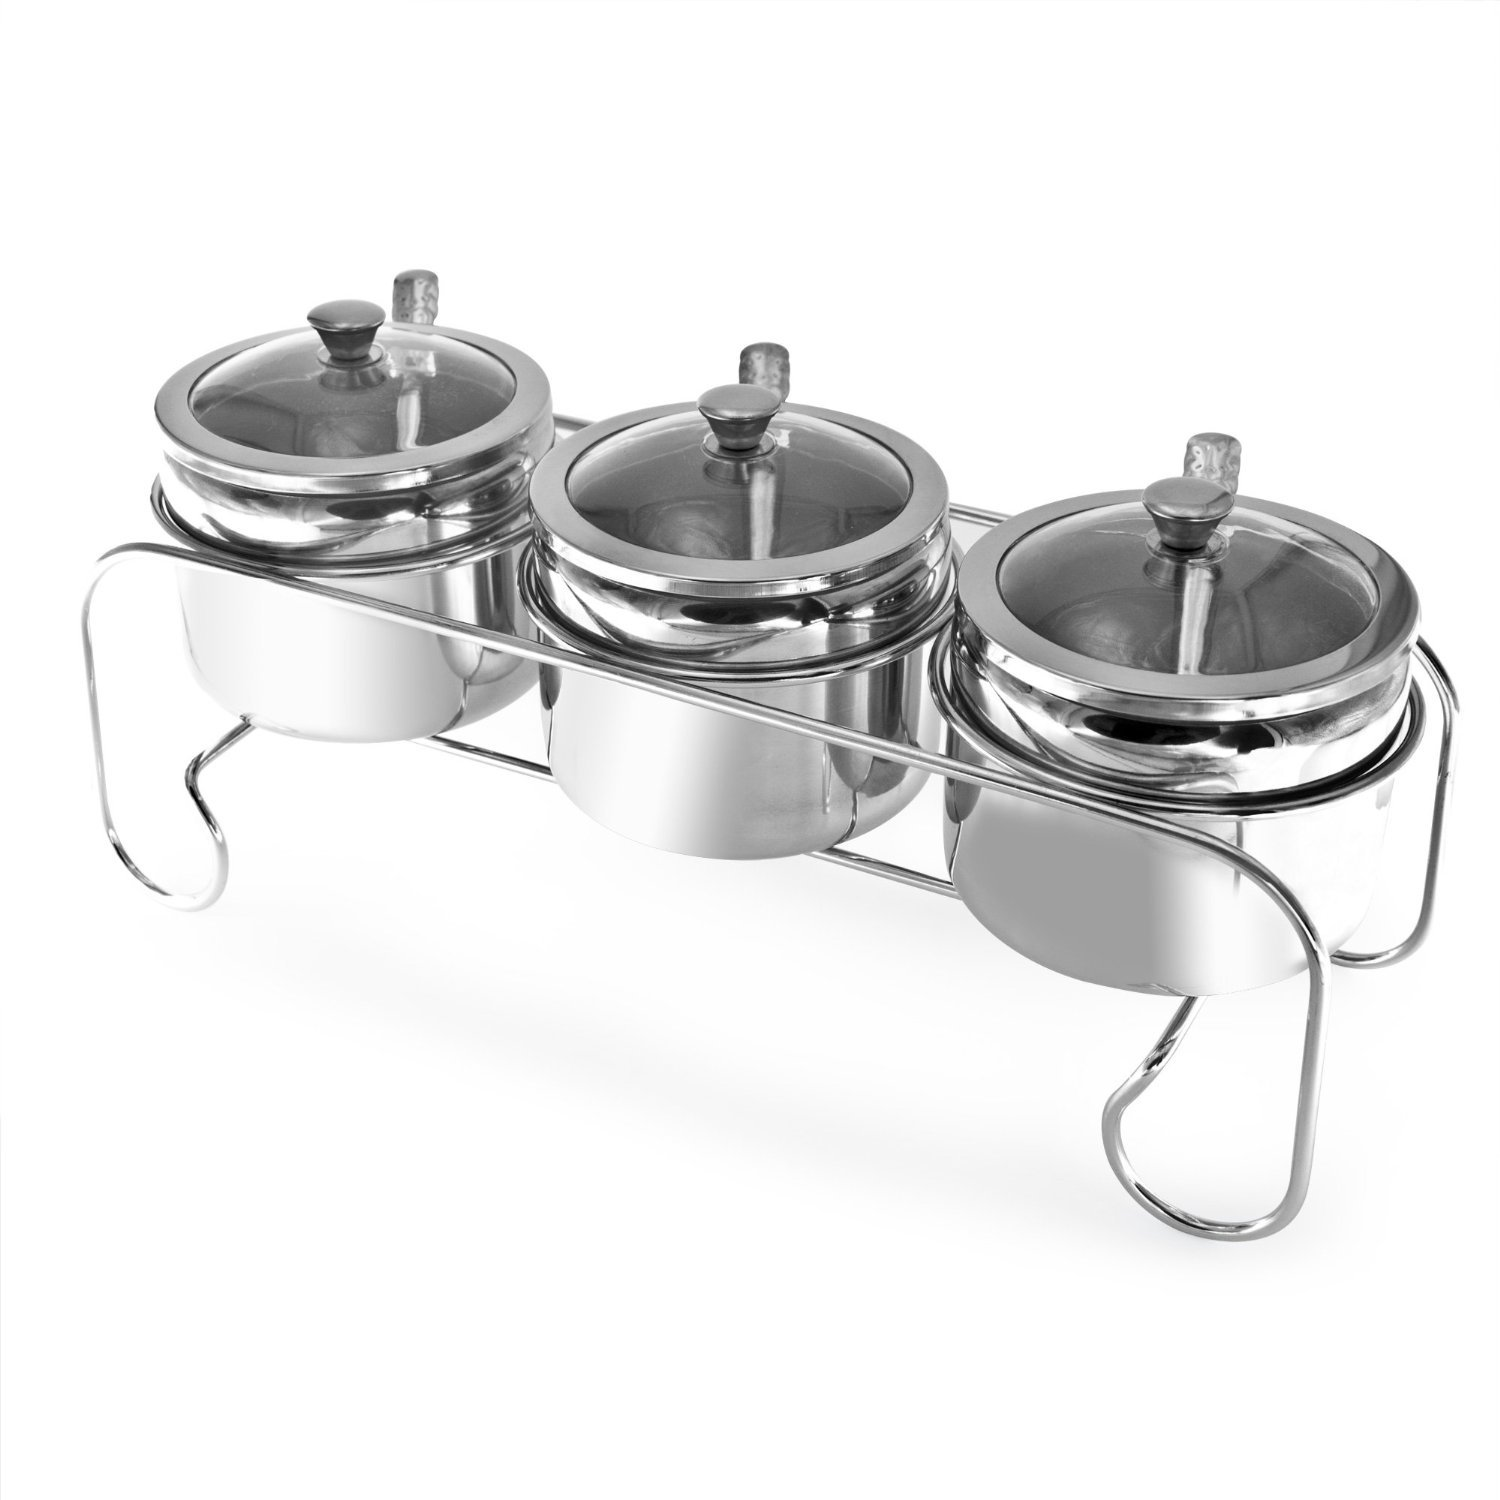 VANRA 304 Stainless Steel Seasoning Containers Spice Jar Spice Rack Condiment Cruet Bottle Kitchen Supplies Salt Pepper Sugar Storage Organizers with Serving Spoons, Spice Stand, Set of 3